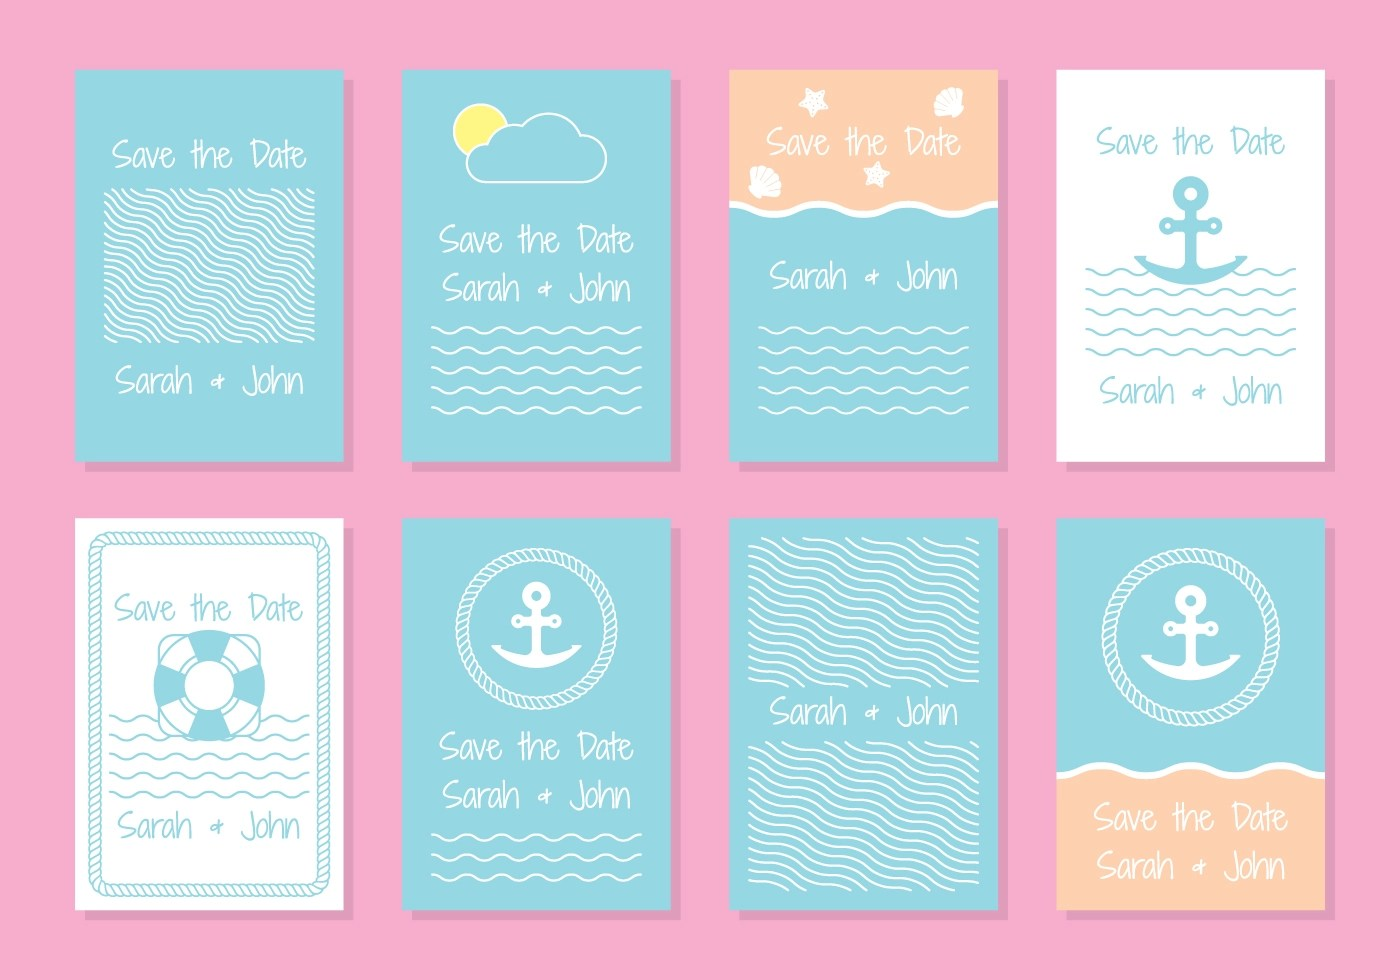 Nautical Invitation Free Vector Art 7581 Free Downloads